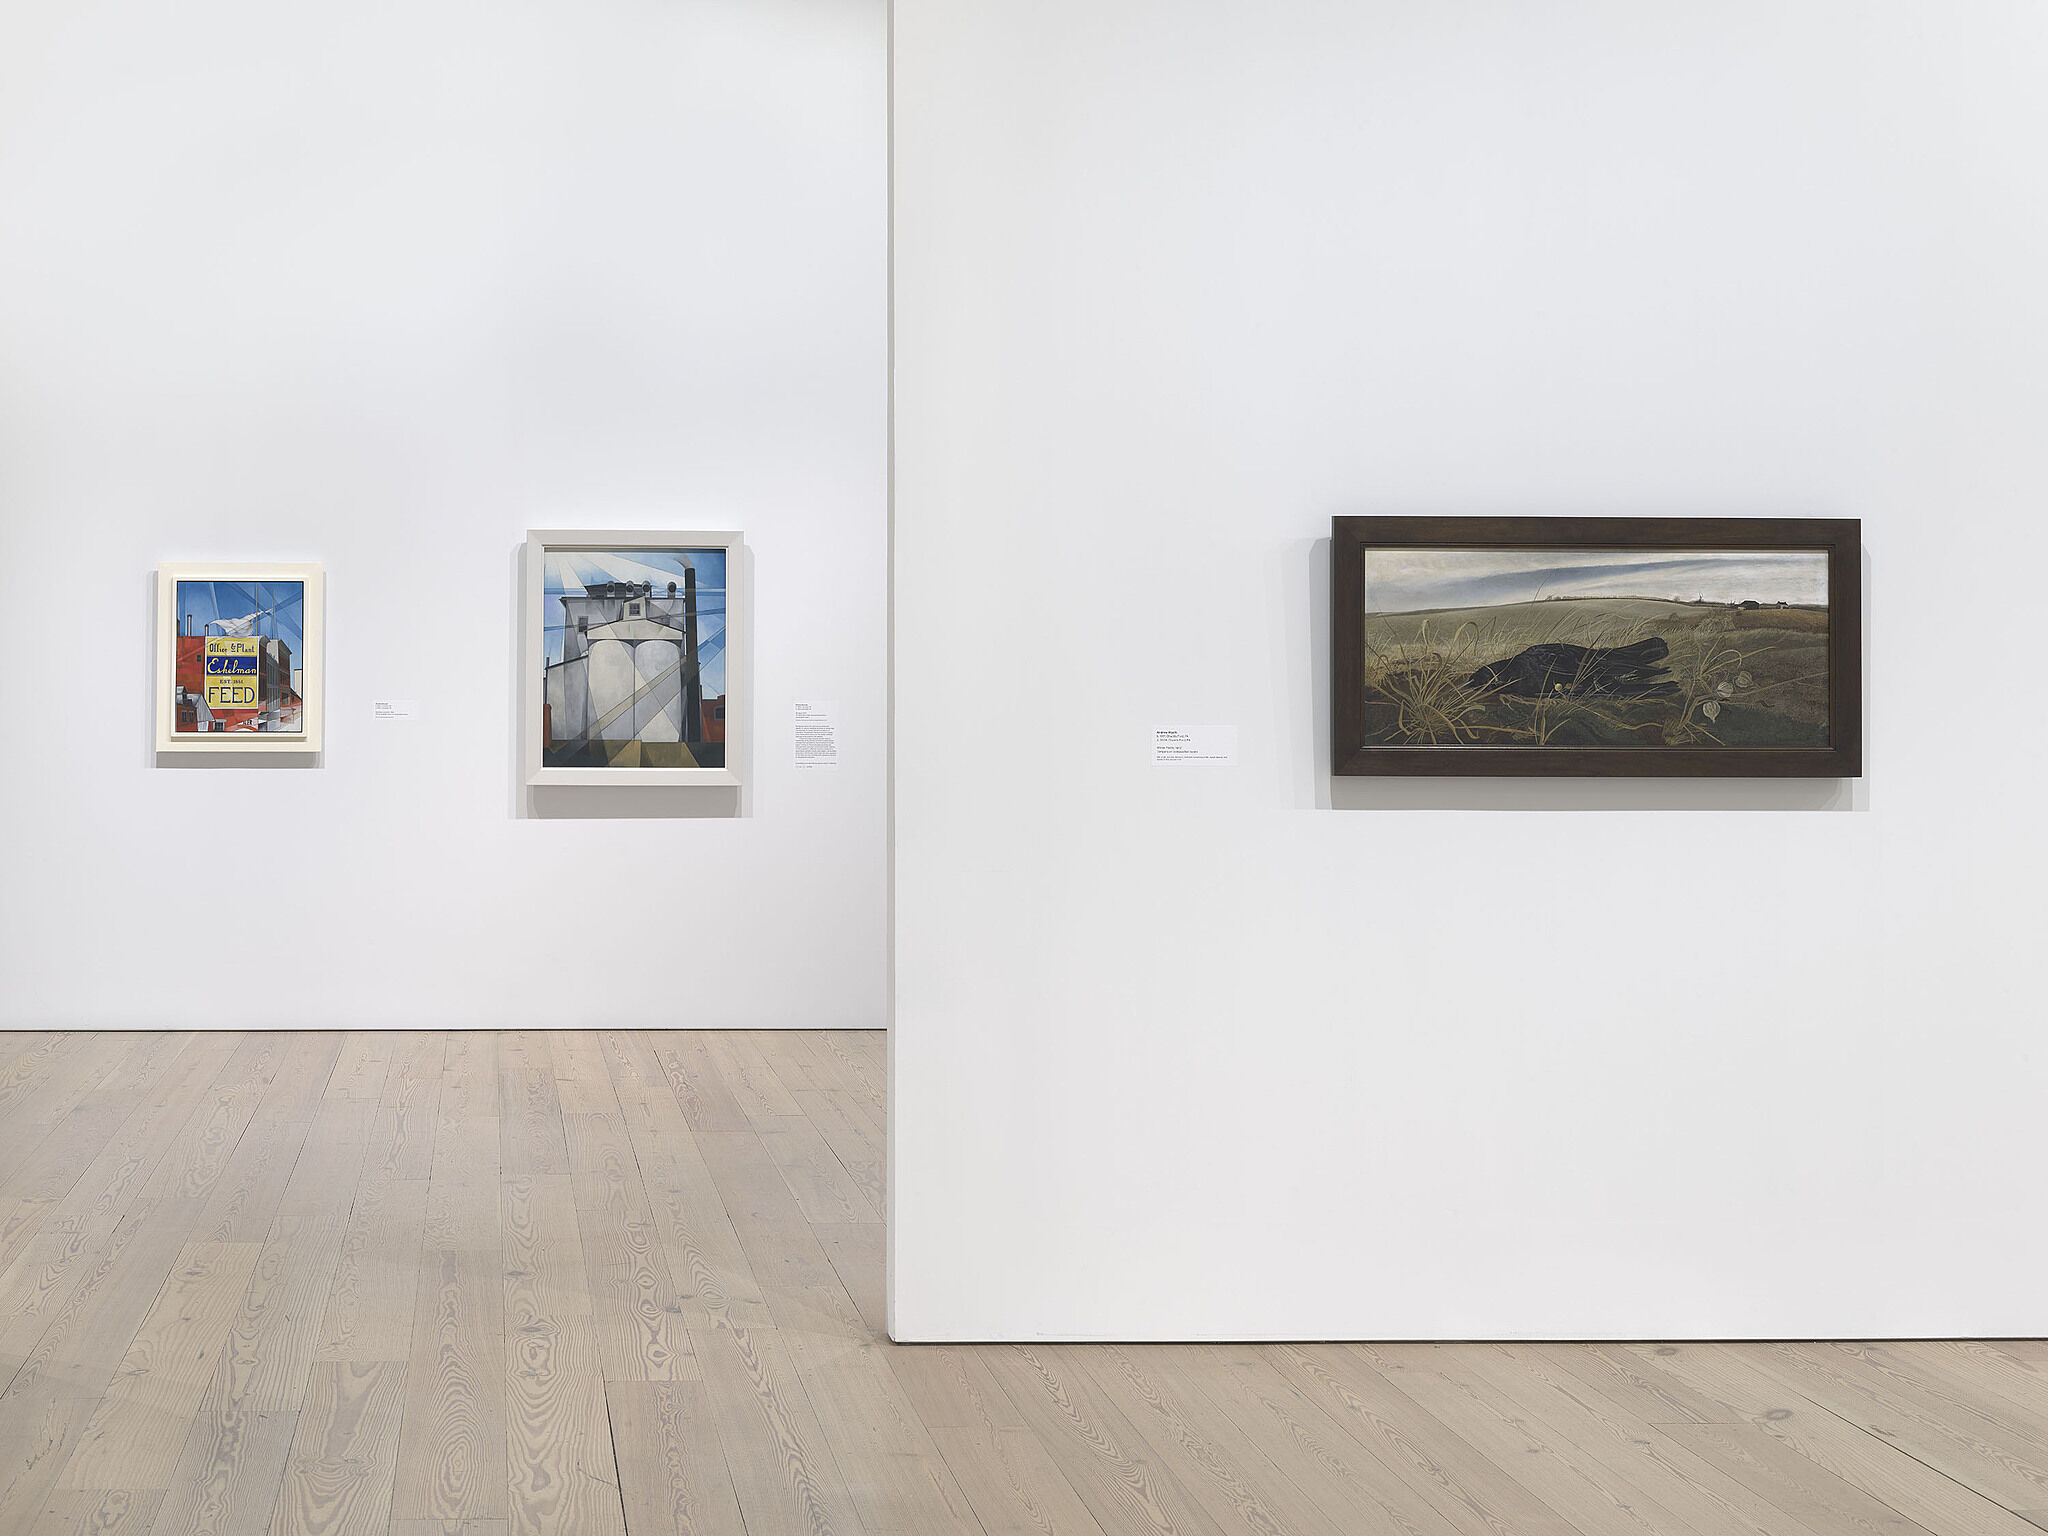 An image of the Whitney galleries with paintings on the wall